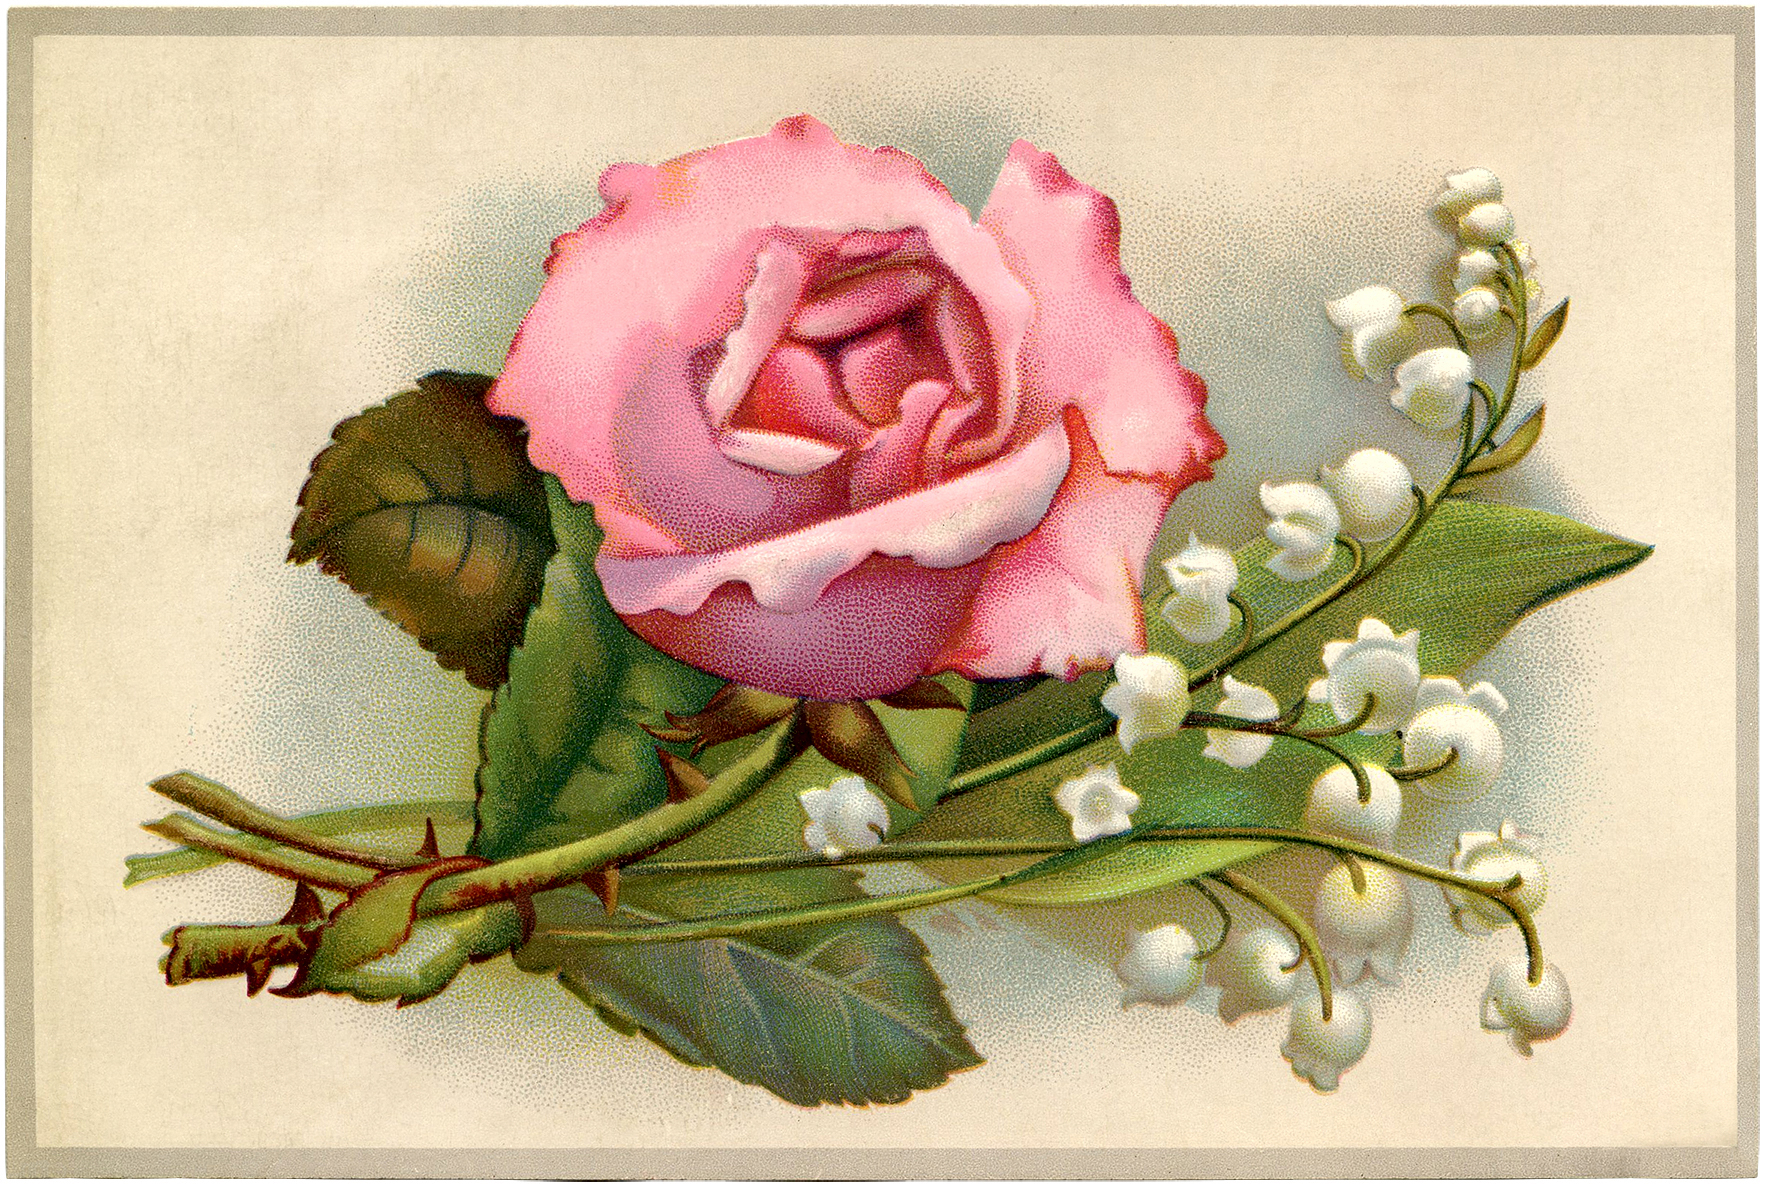 Vintage Roses And Lily Of The Valley Image The Graphics